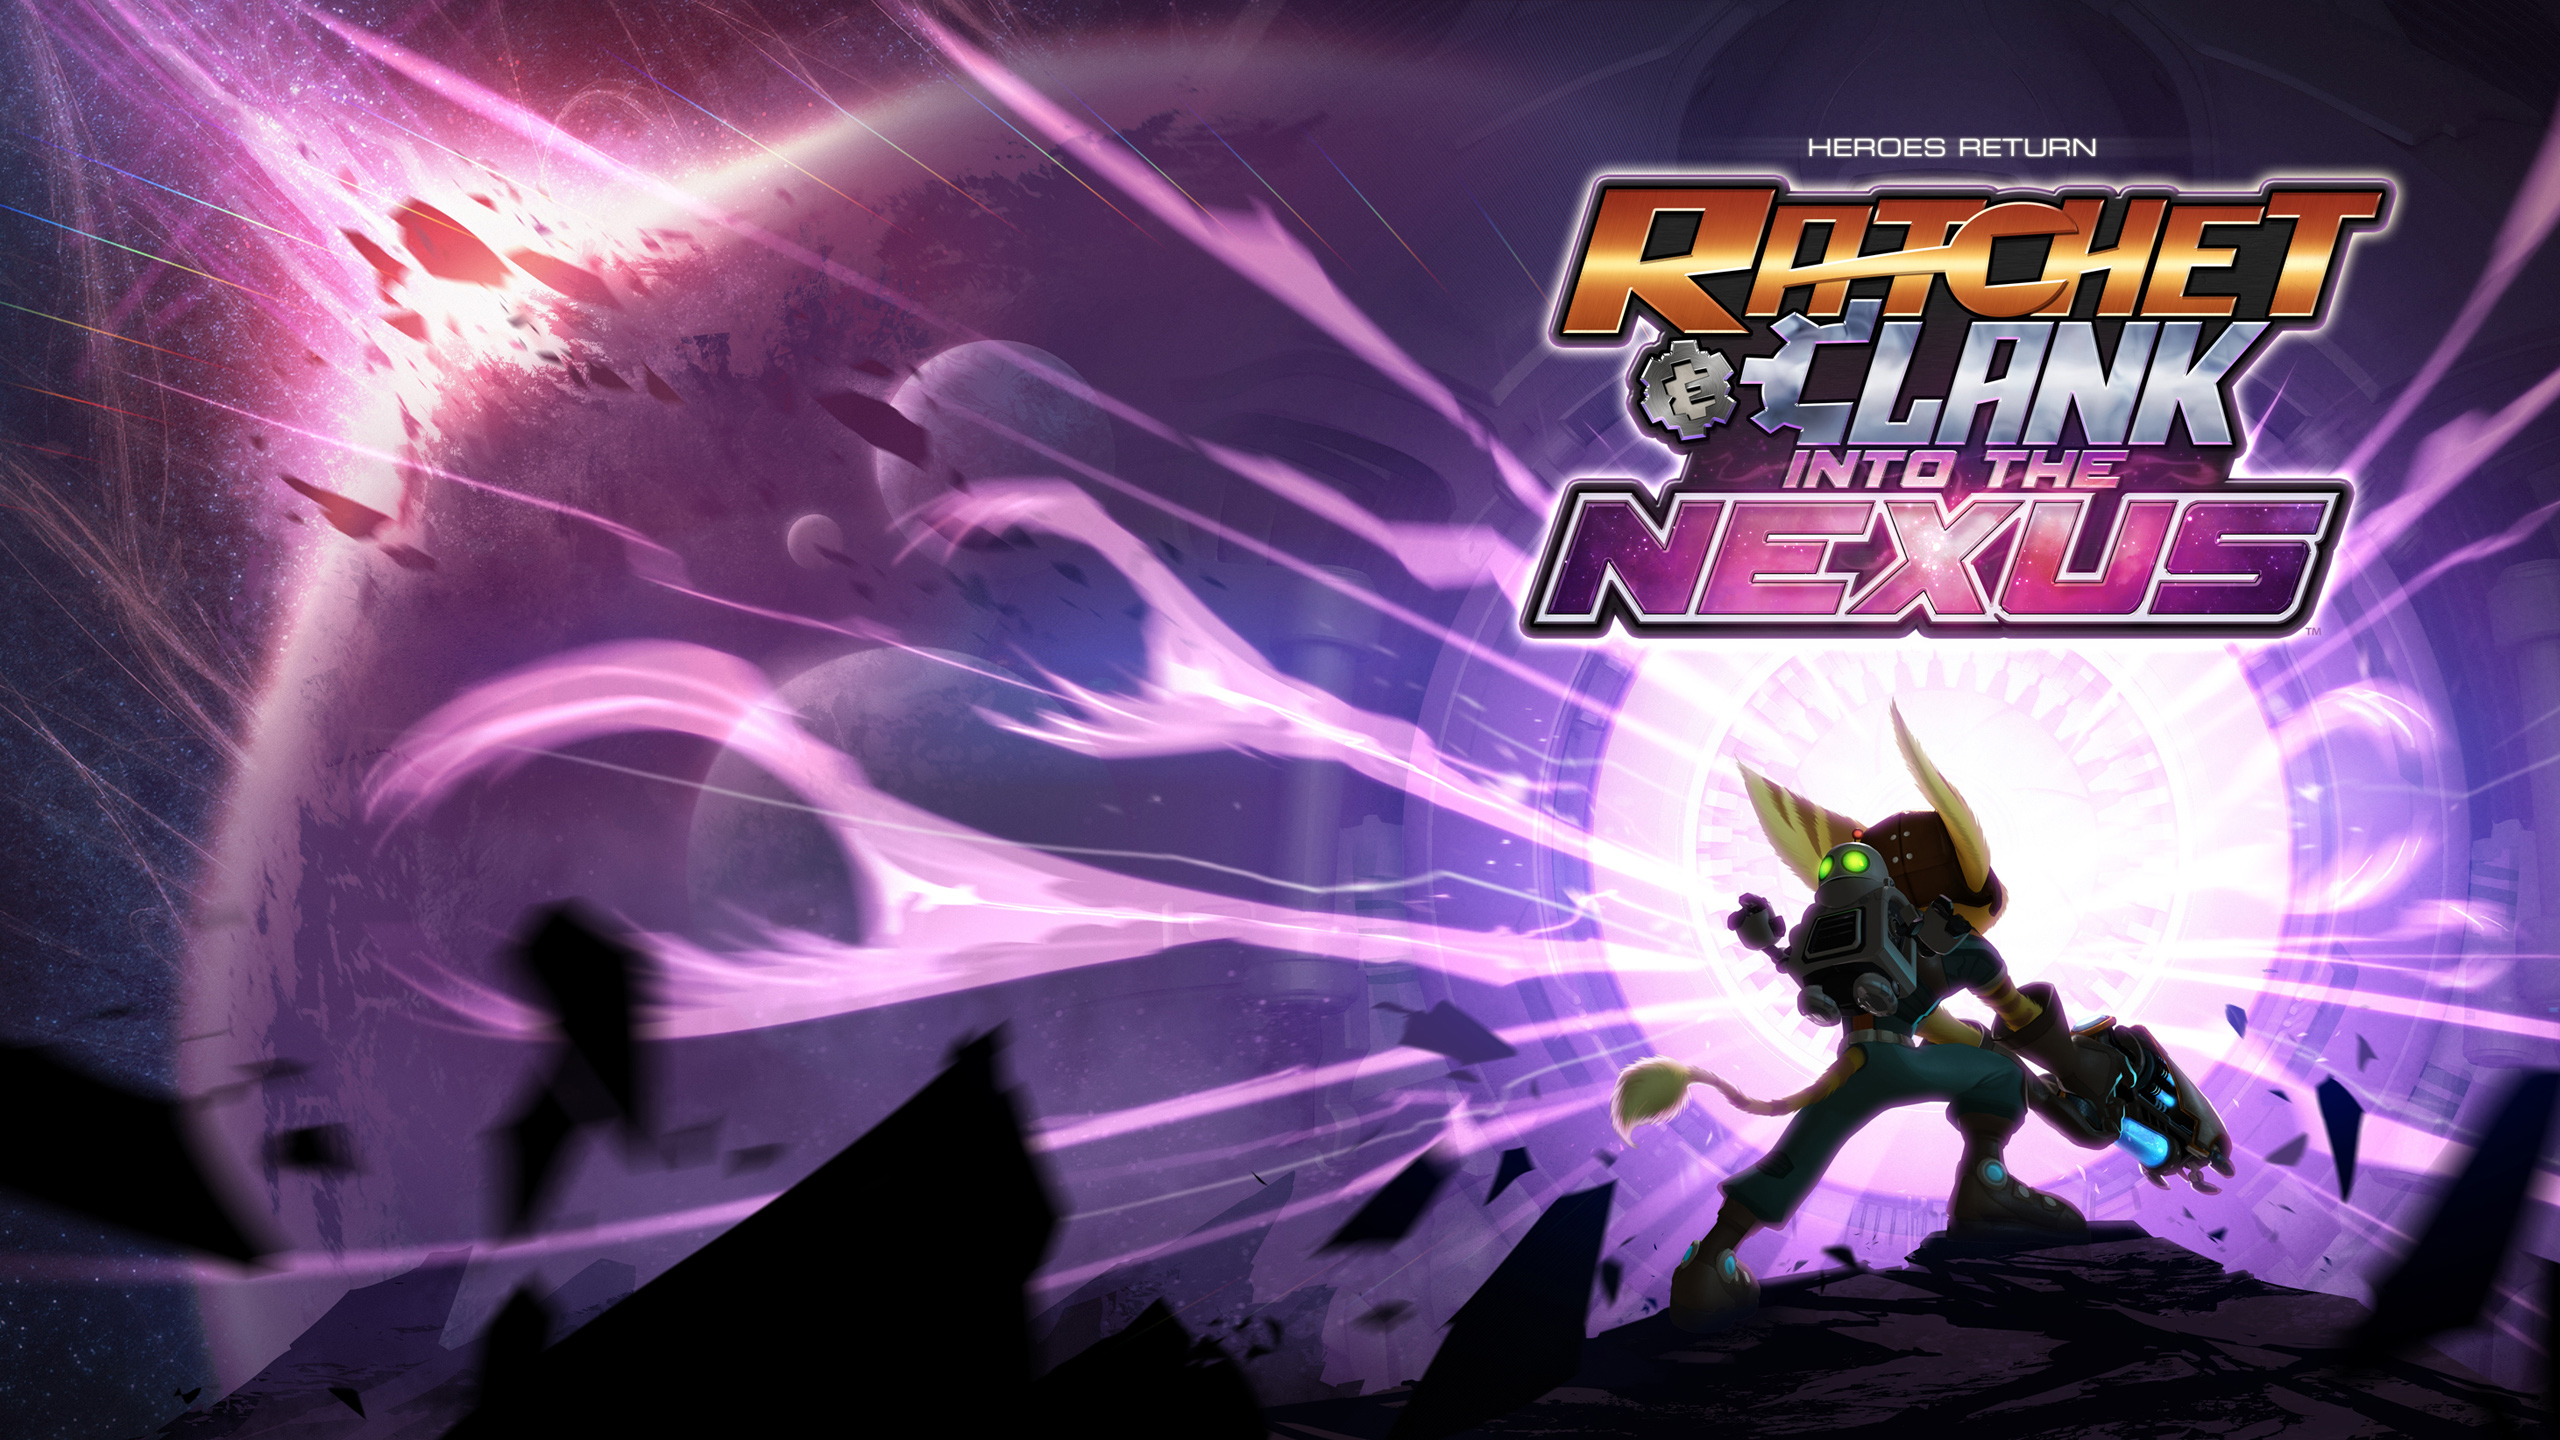 Ratchet and Clank Into the Nexus Game 1658.83 Kb